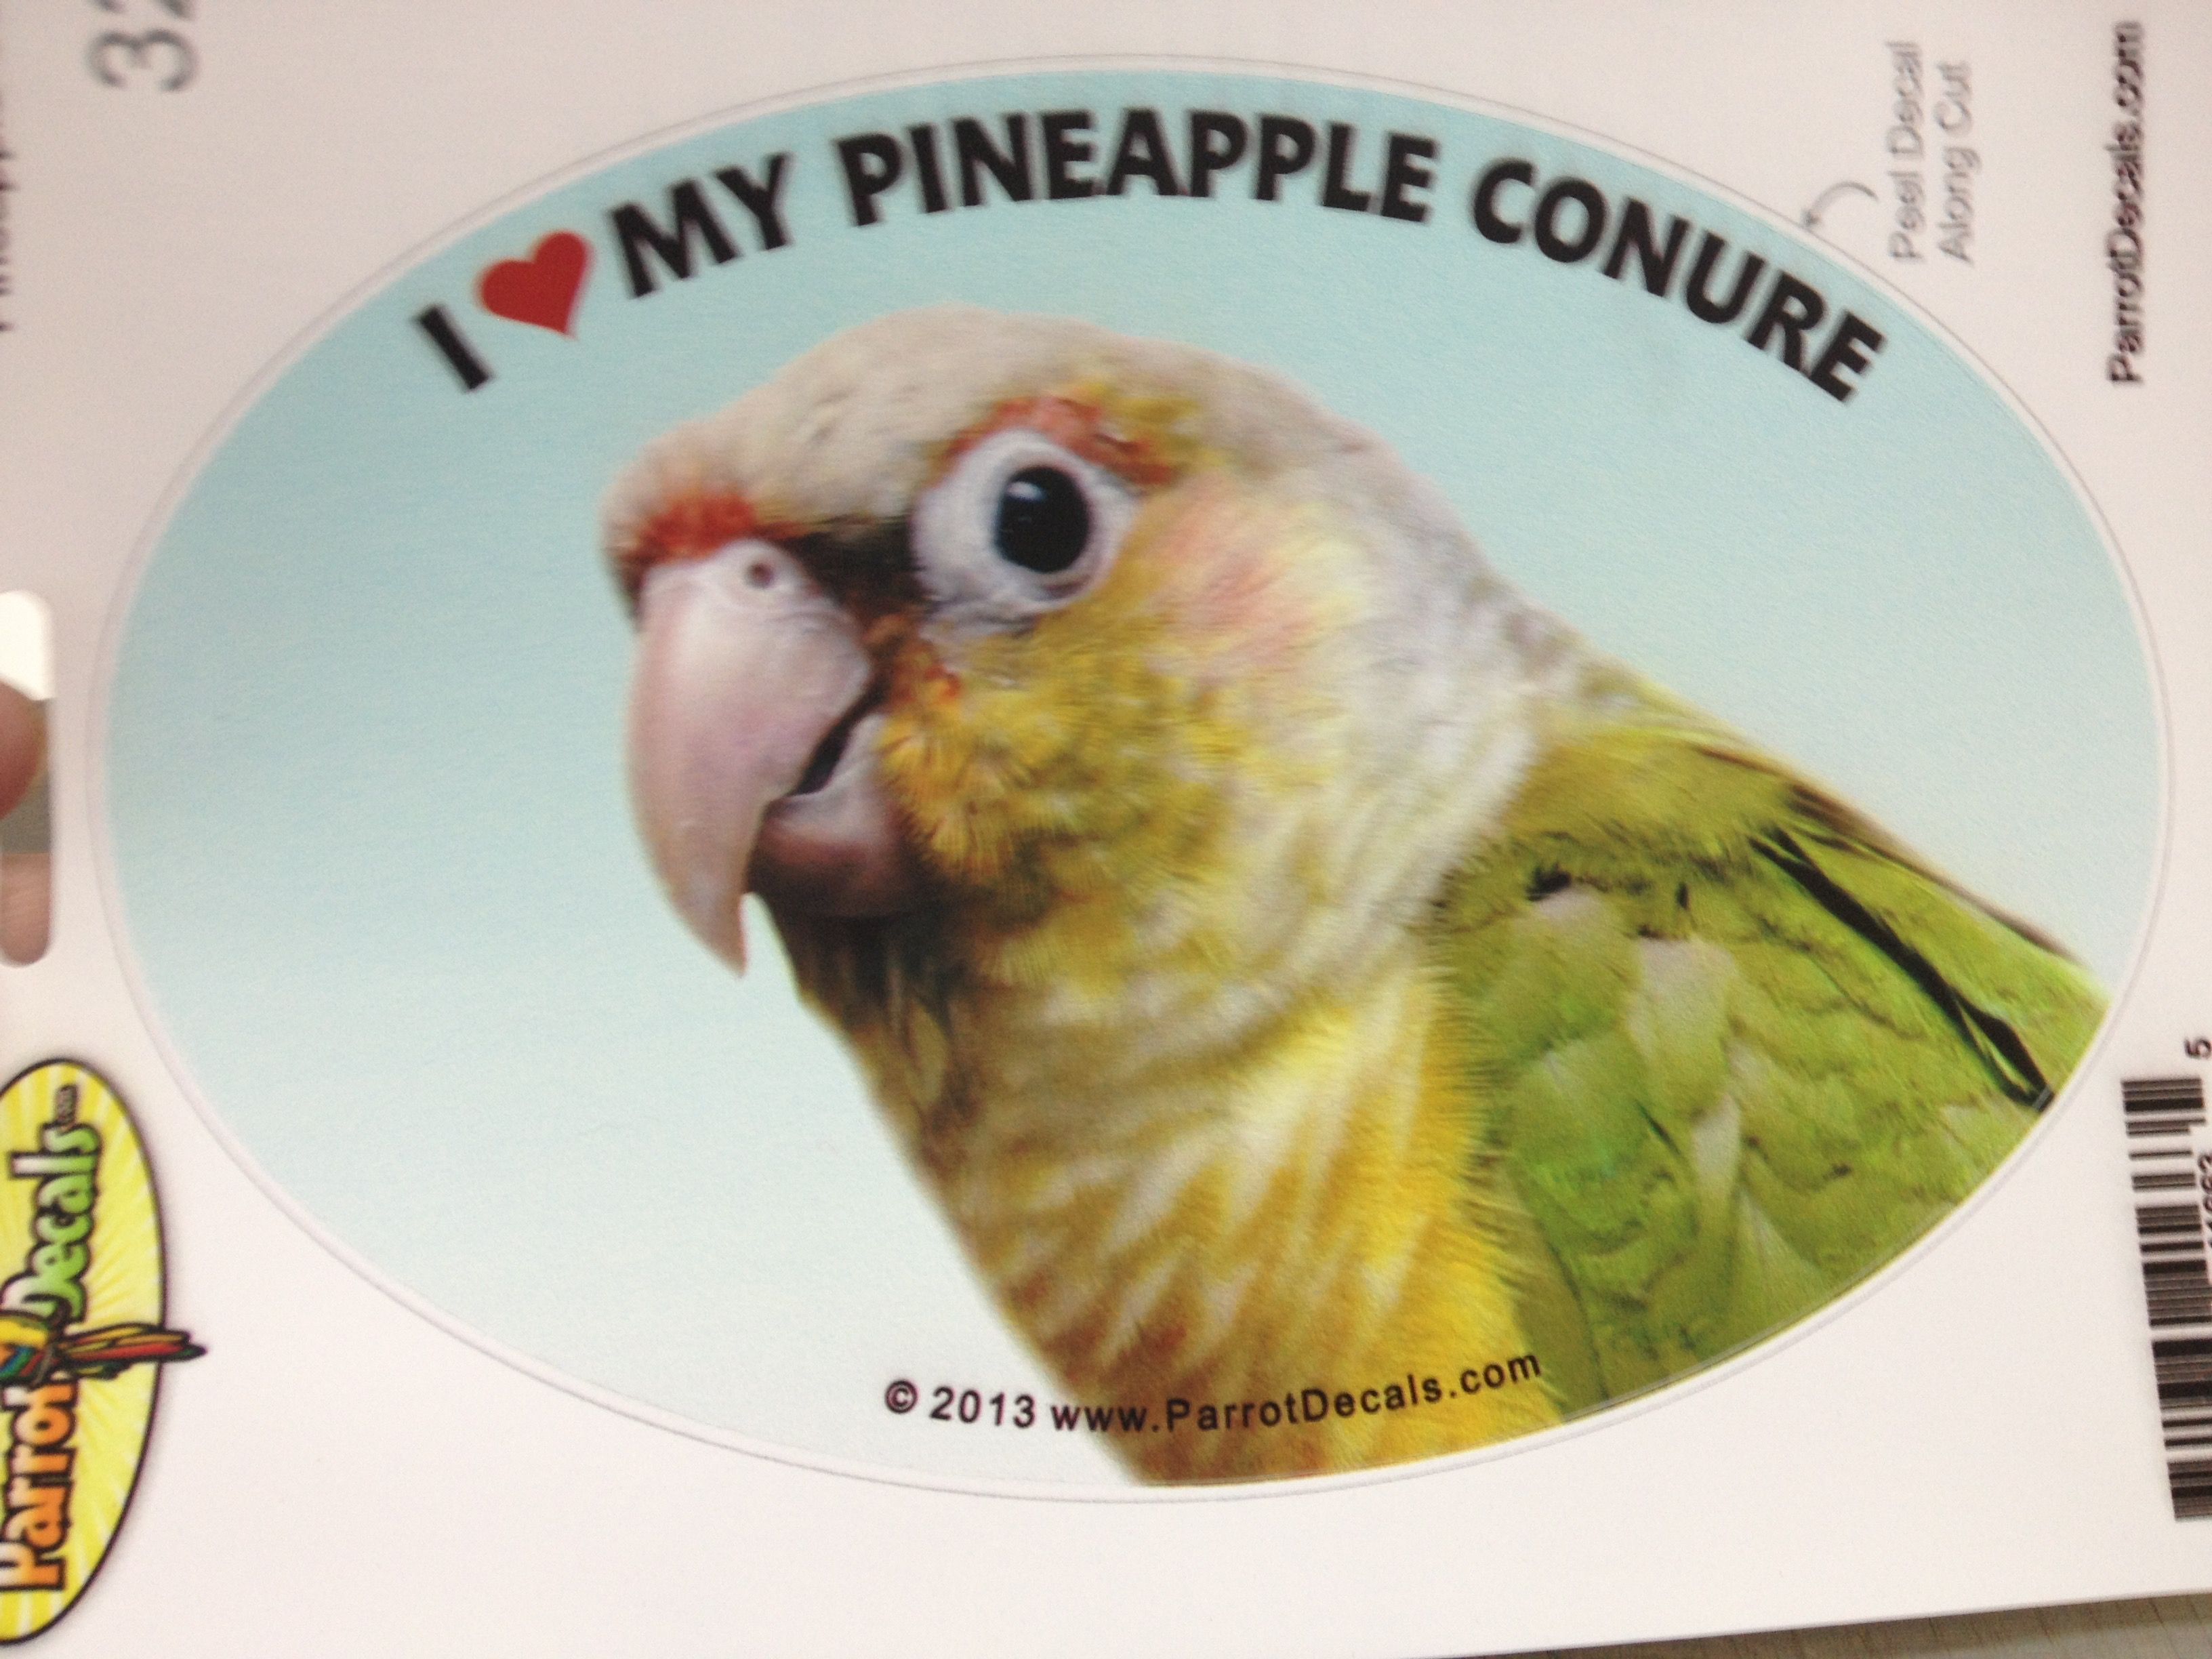 Pin on Pineapple Conure Parrots / Exotic Birds